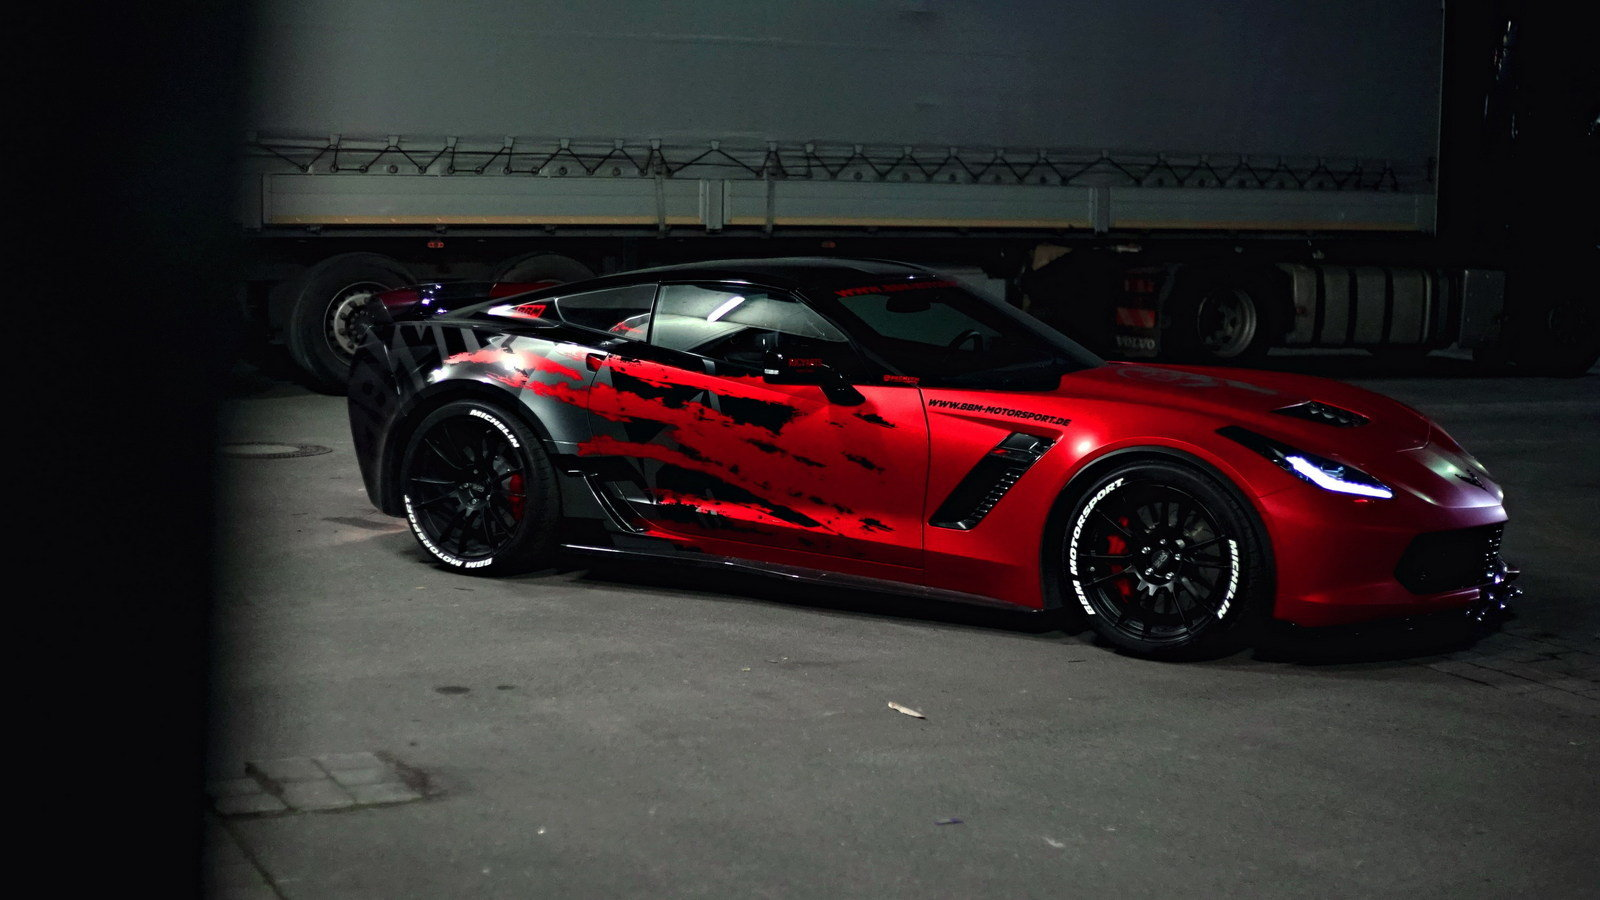 2016 chevrolet corvette z06 by bbm motorsport picture 671938 car review top speed. Black Bedroom Furniture Sets. Home Design Ideas